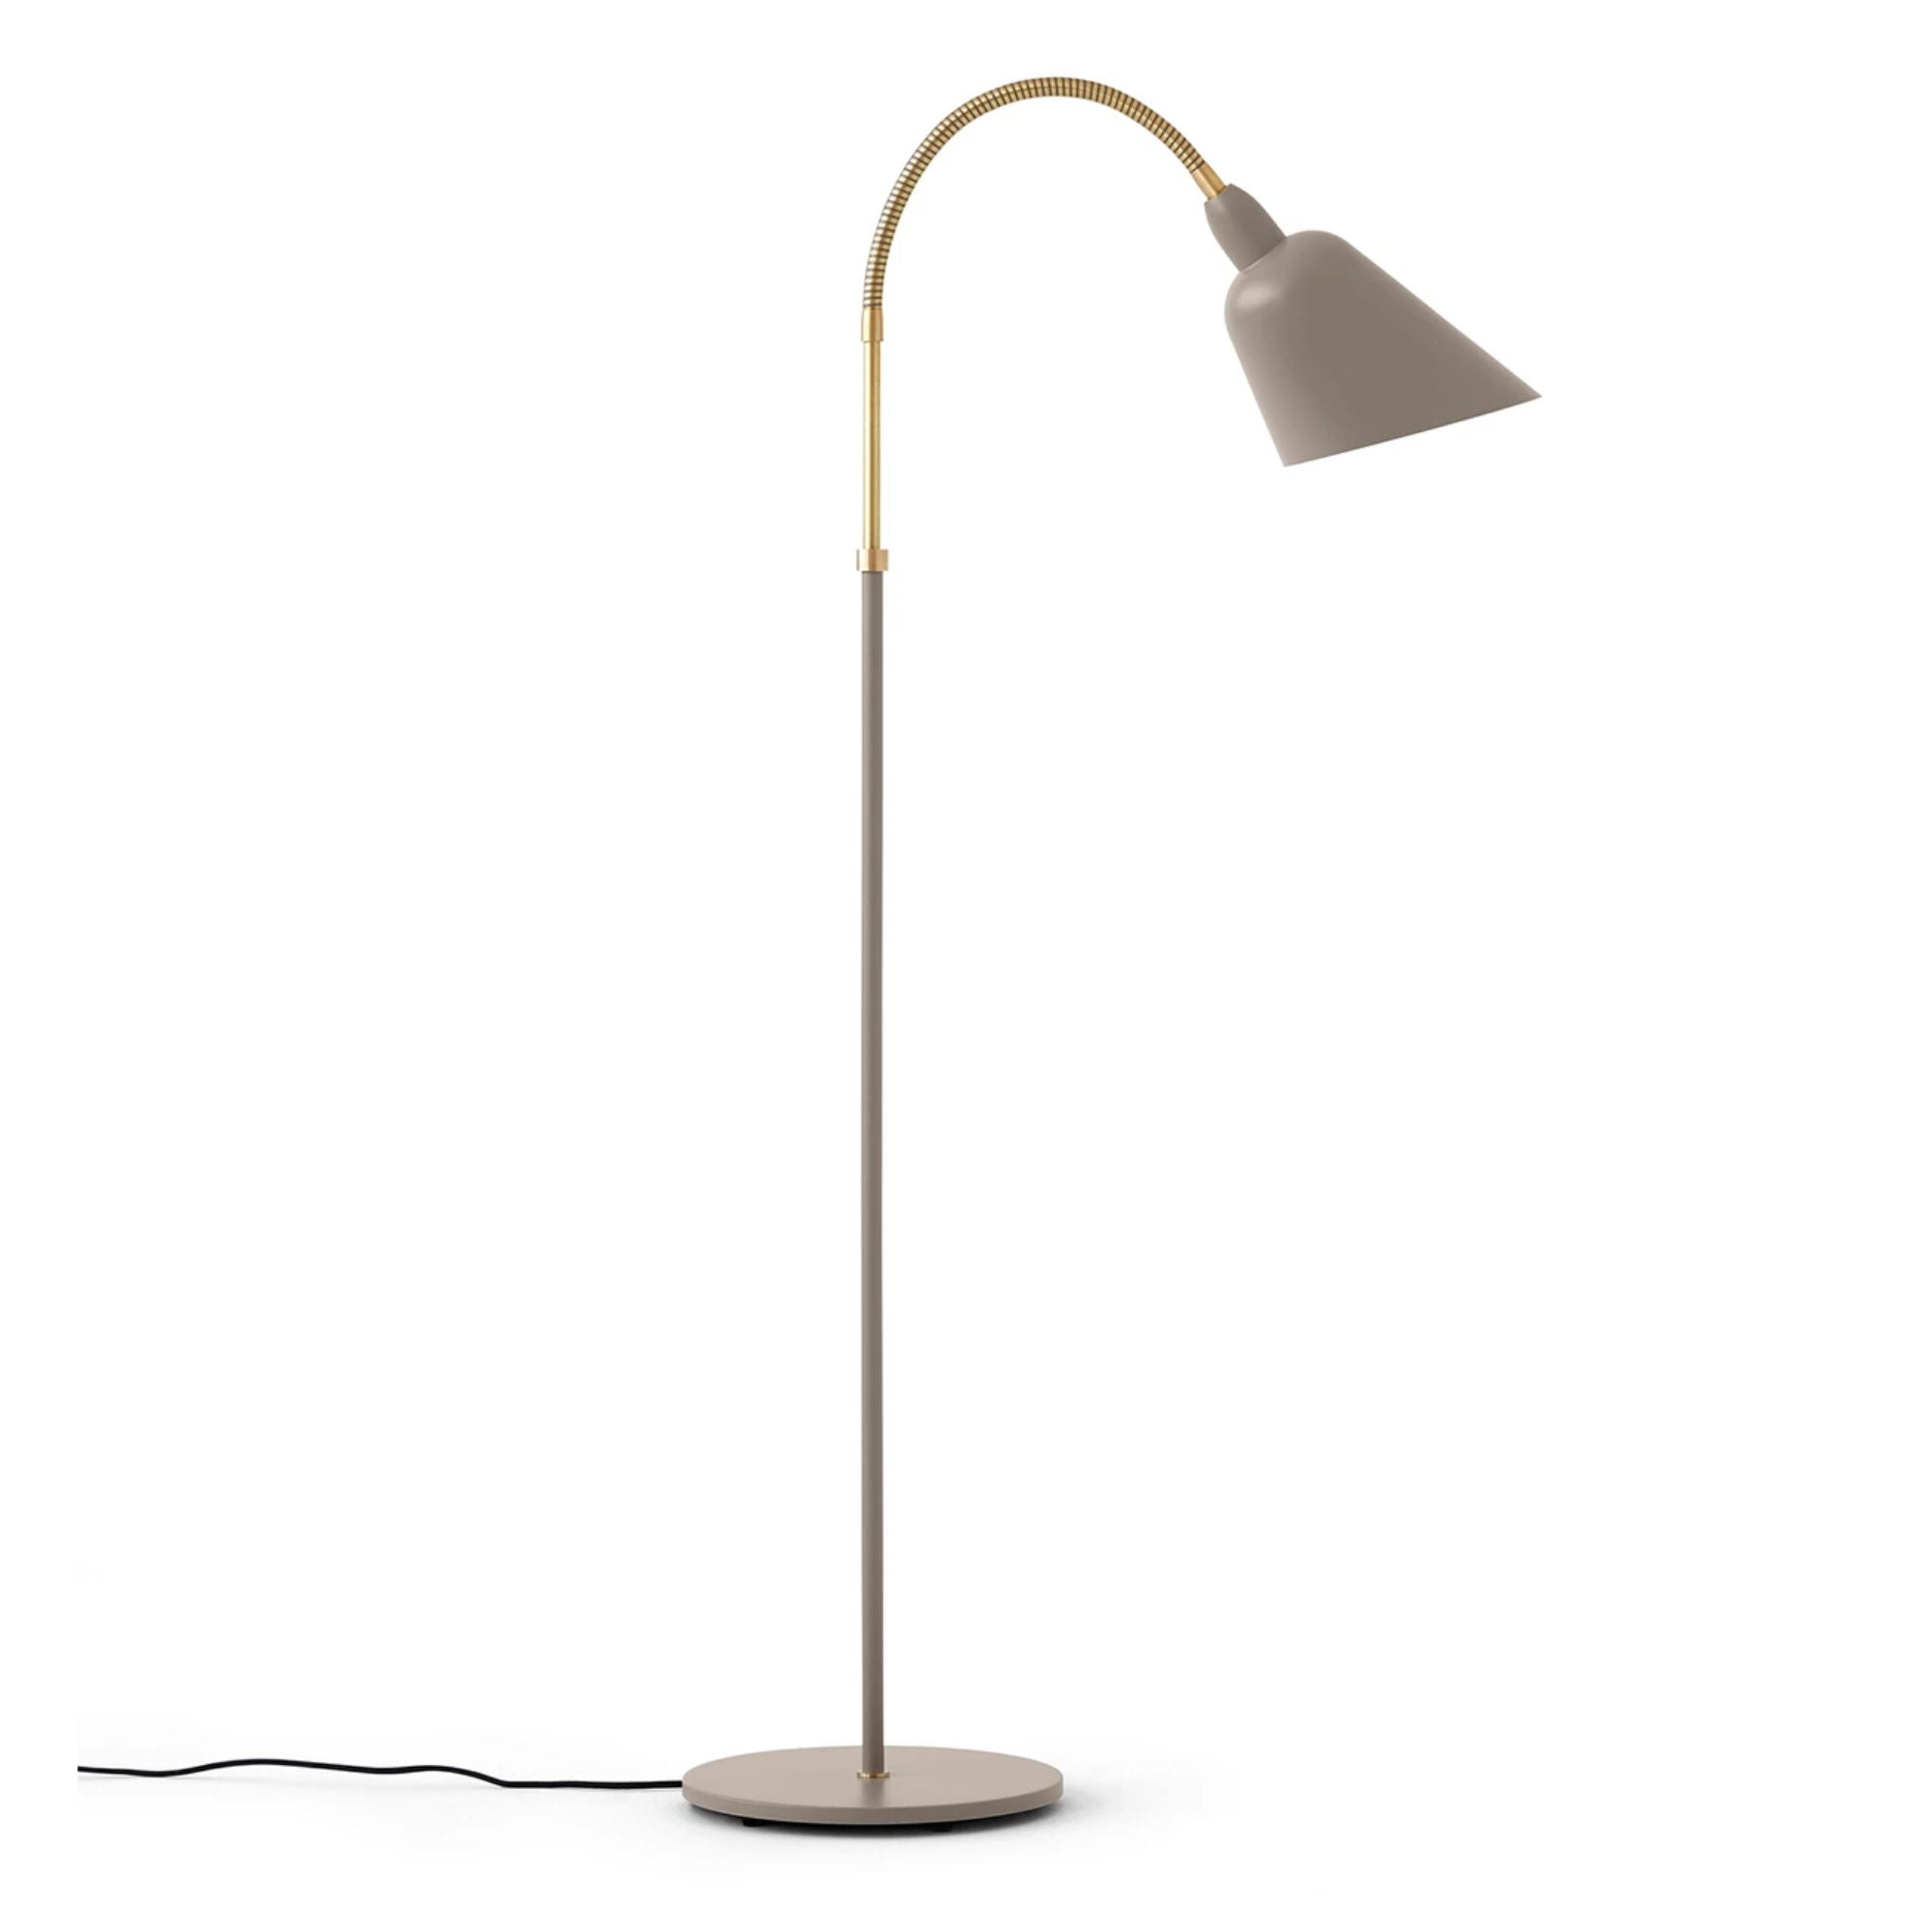 &Tradition AJ7 Bellevue Floor Lamp , Olive Brown/Brass